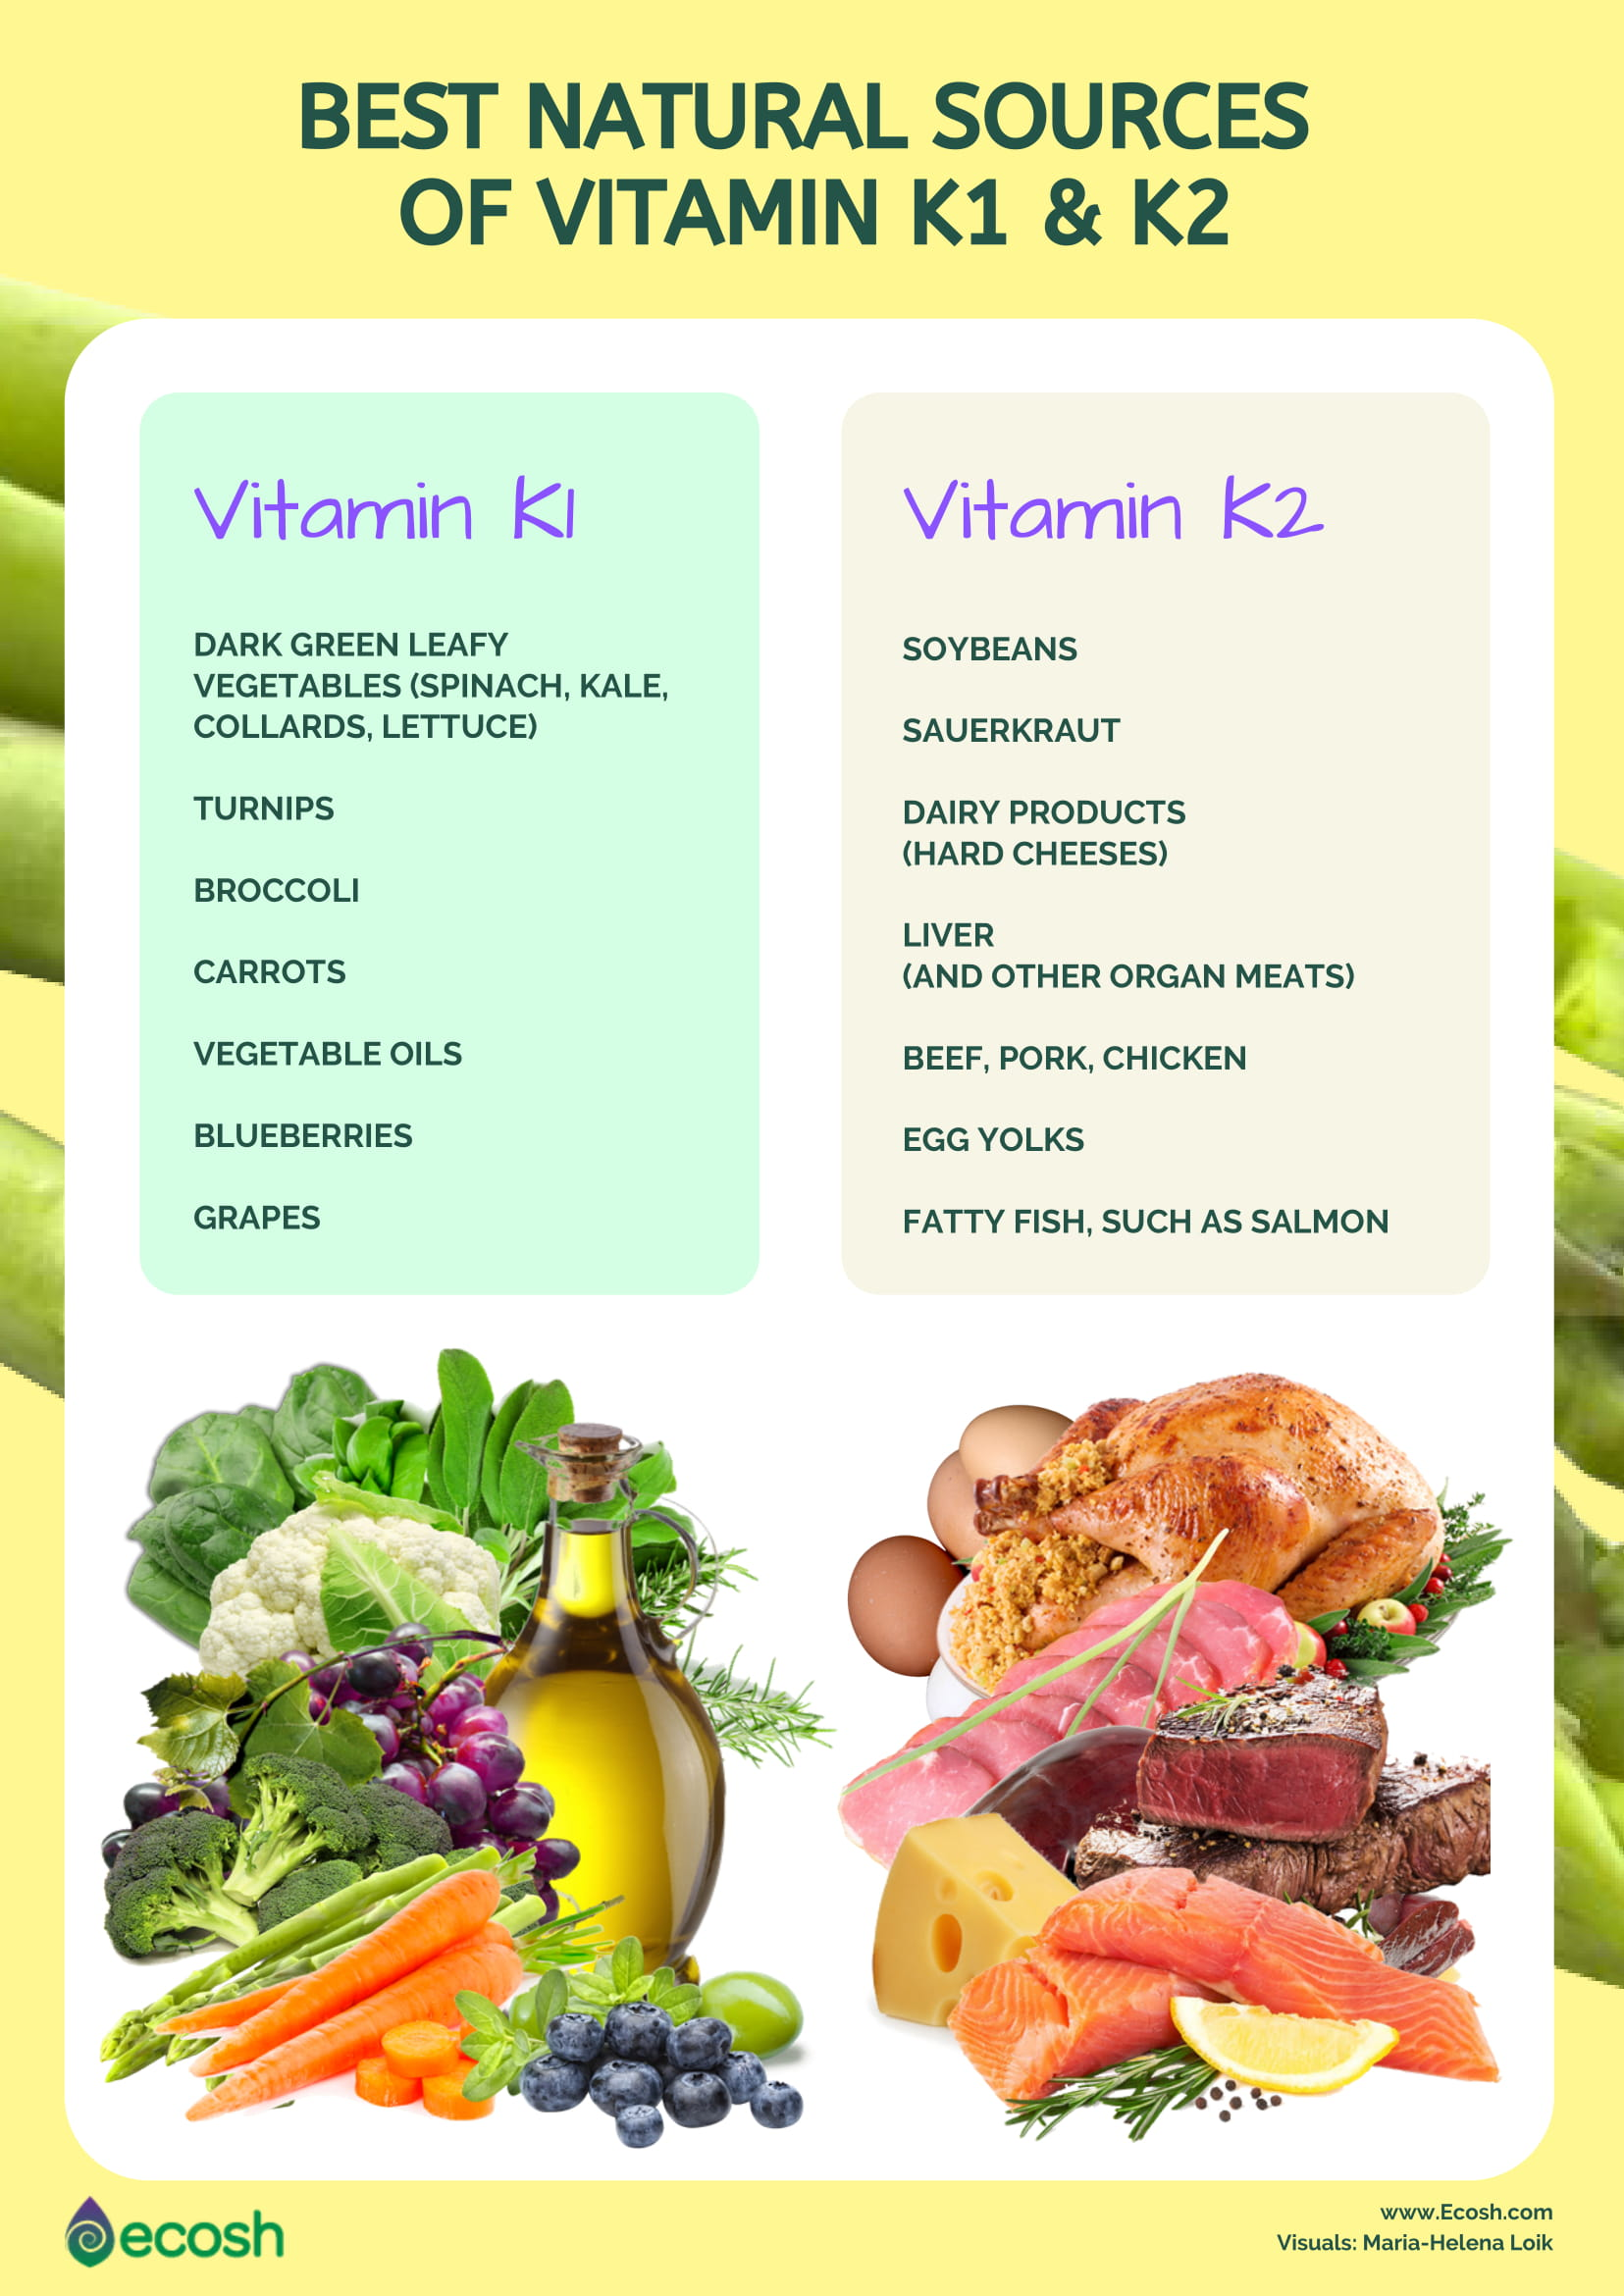 Ecosh_Vitamin K Deficiency - Symptoms, Causes, Risk Groups and The Best Natural Sources_Vitamin K Sources_Vitamin K1_and K2_Sources